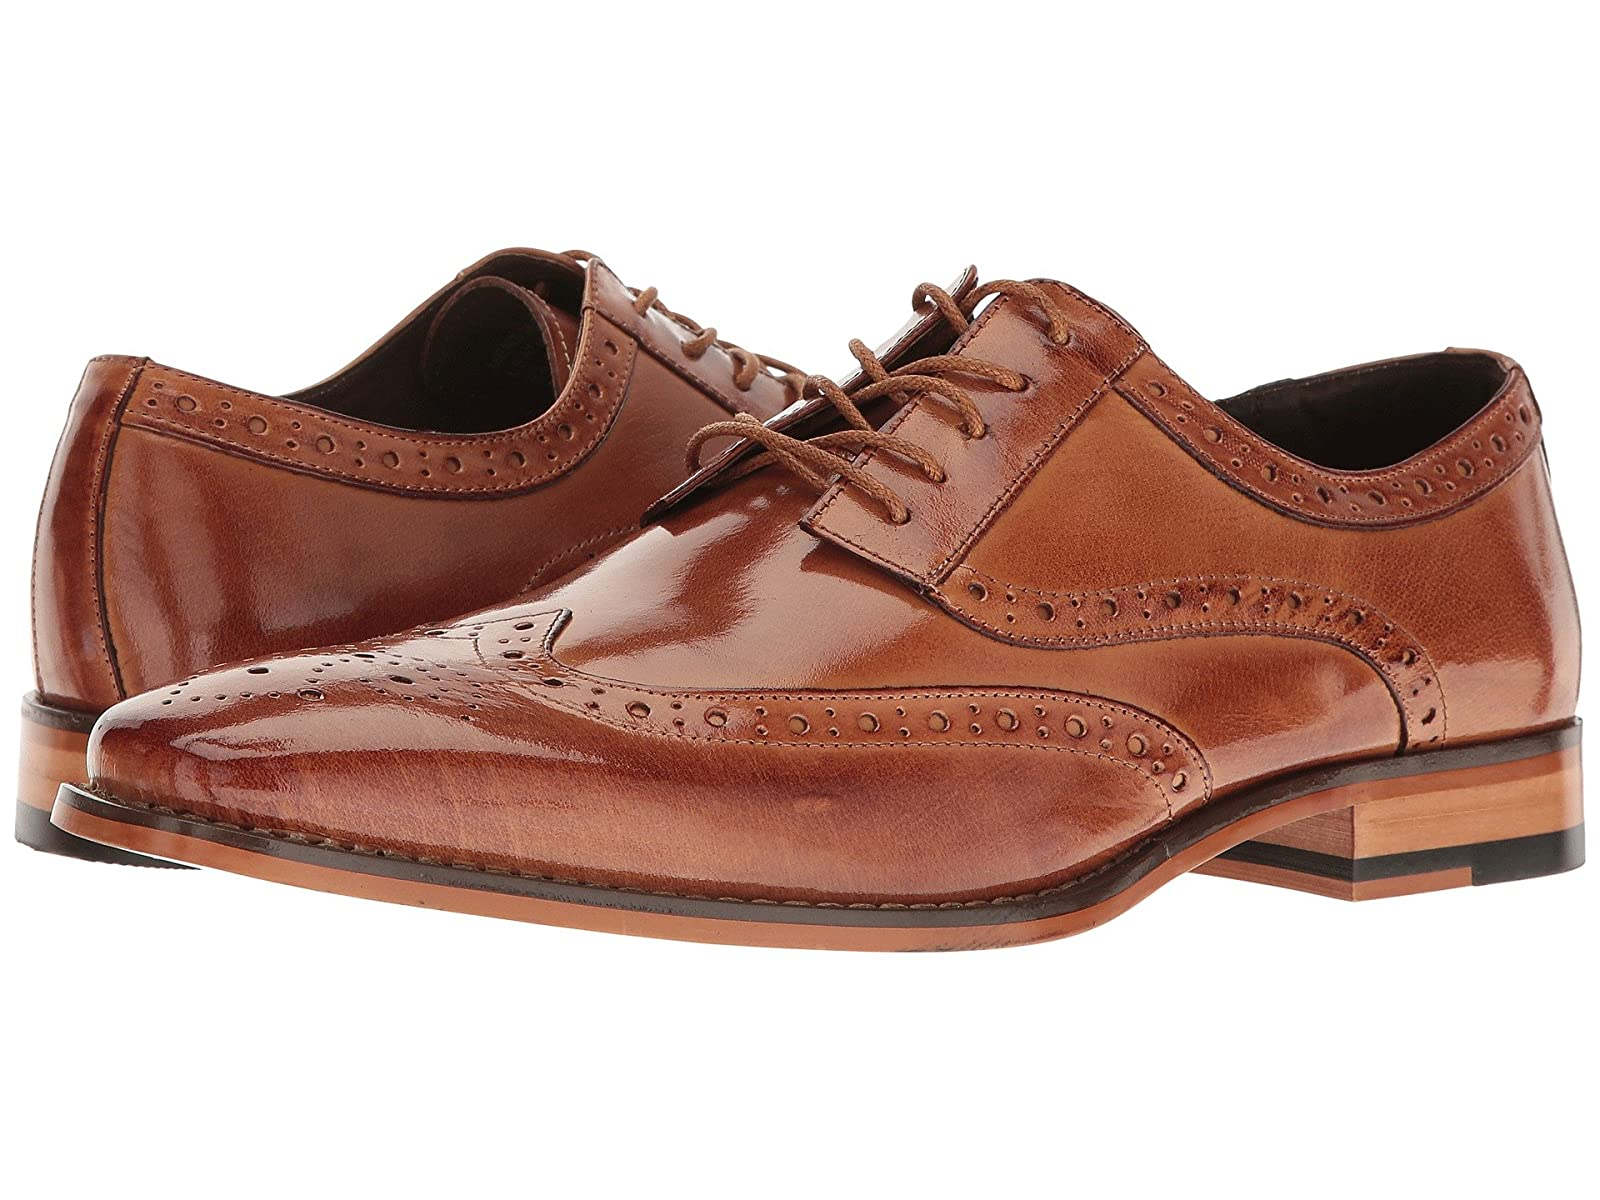 Stacy Adams TinsleyAtmospheric grades have affordable shoes